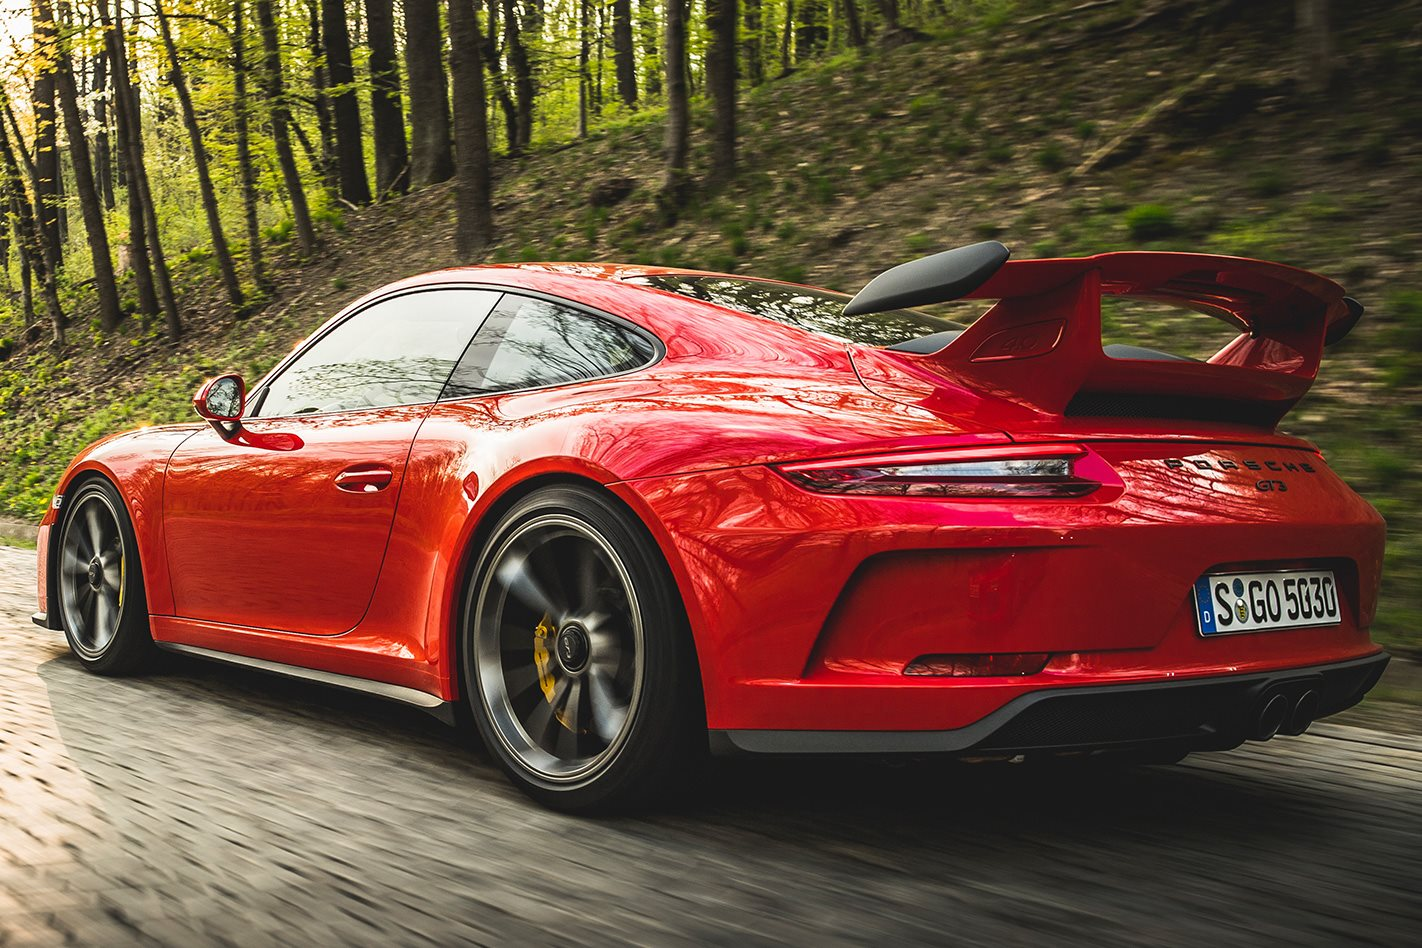 Opinion: Torque-converters are better than dual-clutch autos